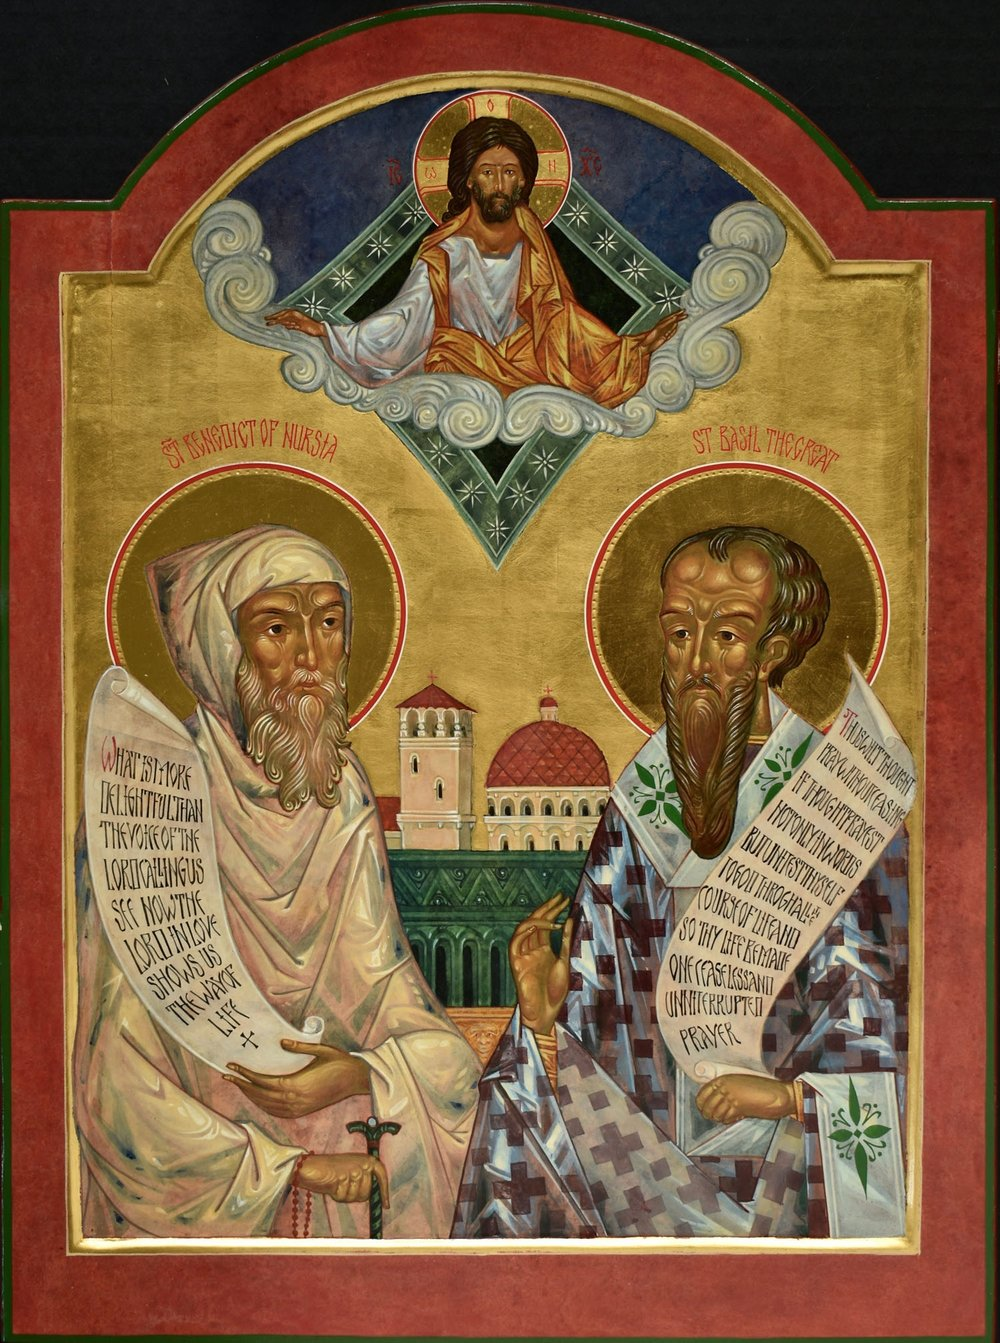 St Benedict of Nursa & St Basil the Theologian